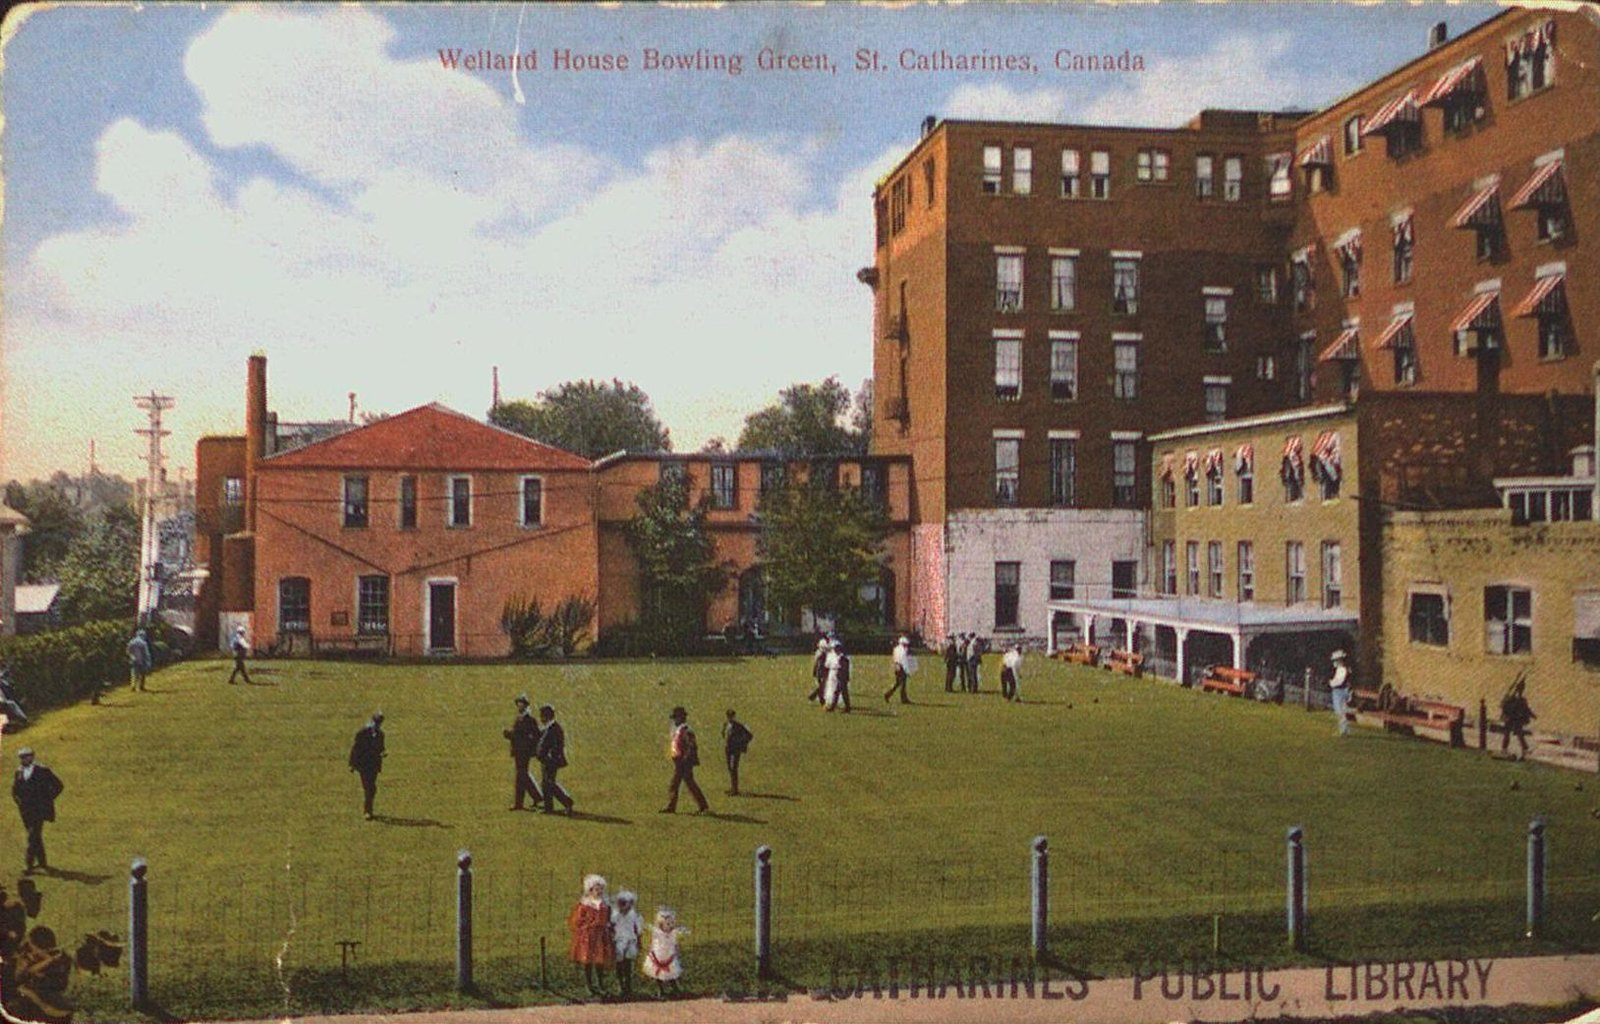 The Welland House Hotel Bowling Green